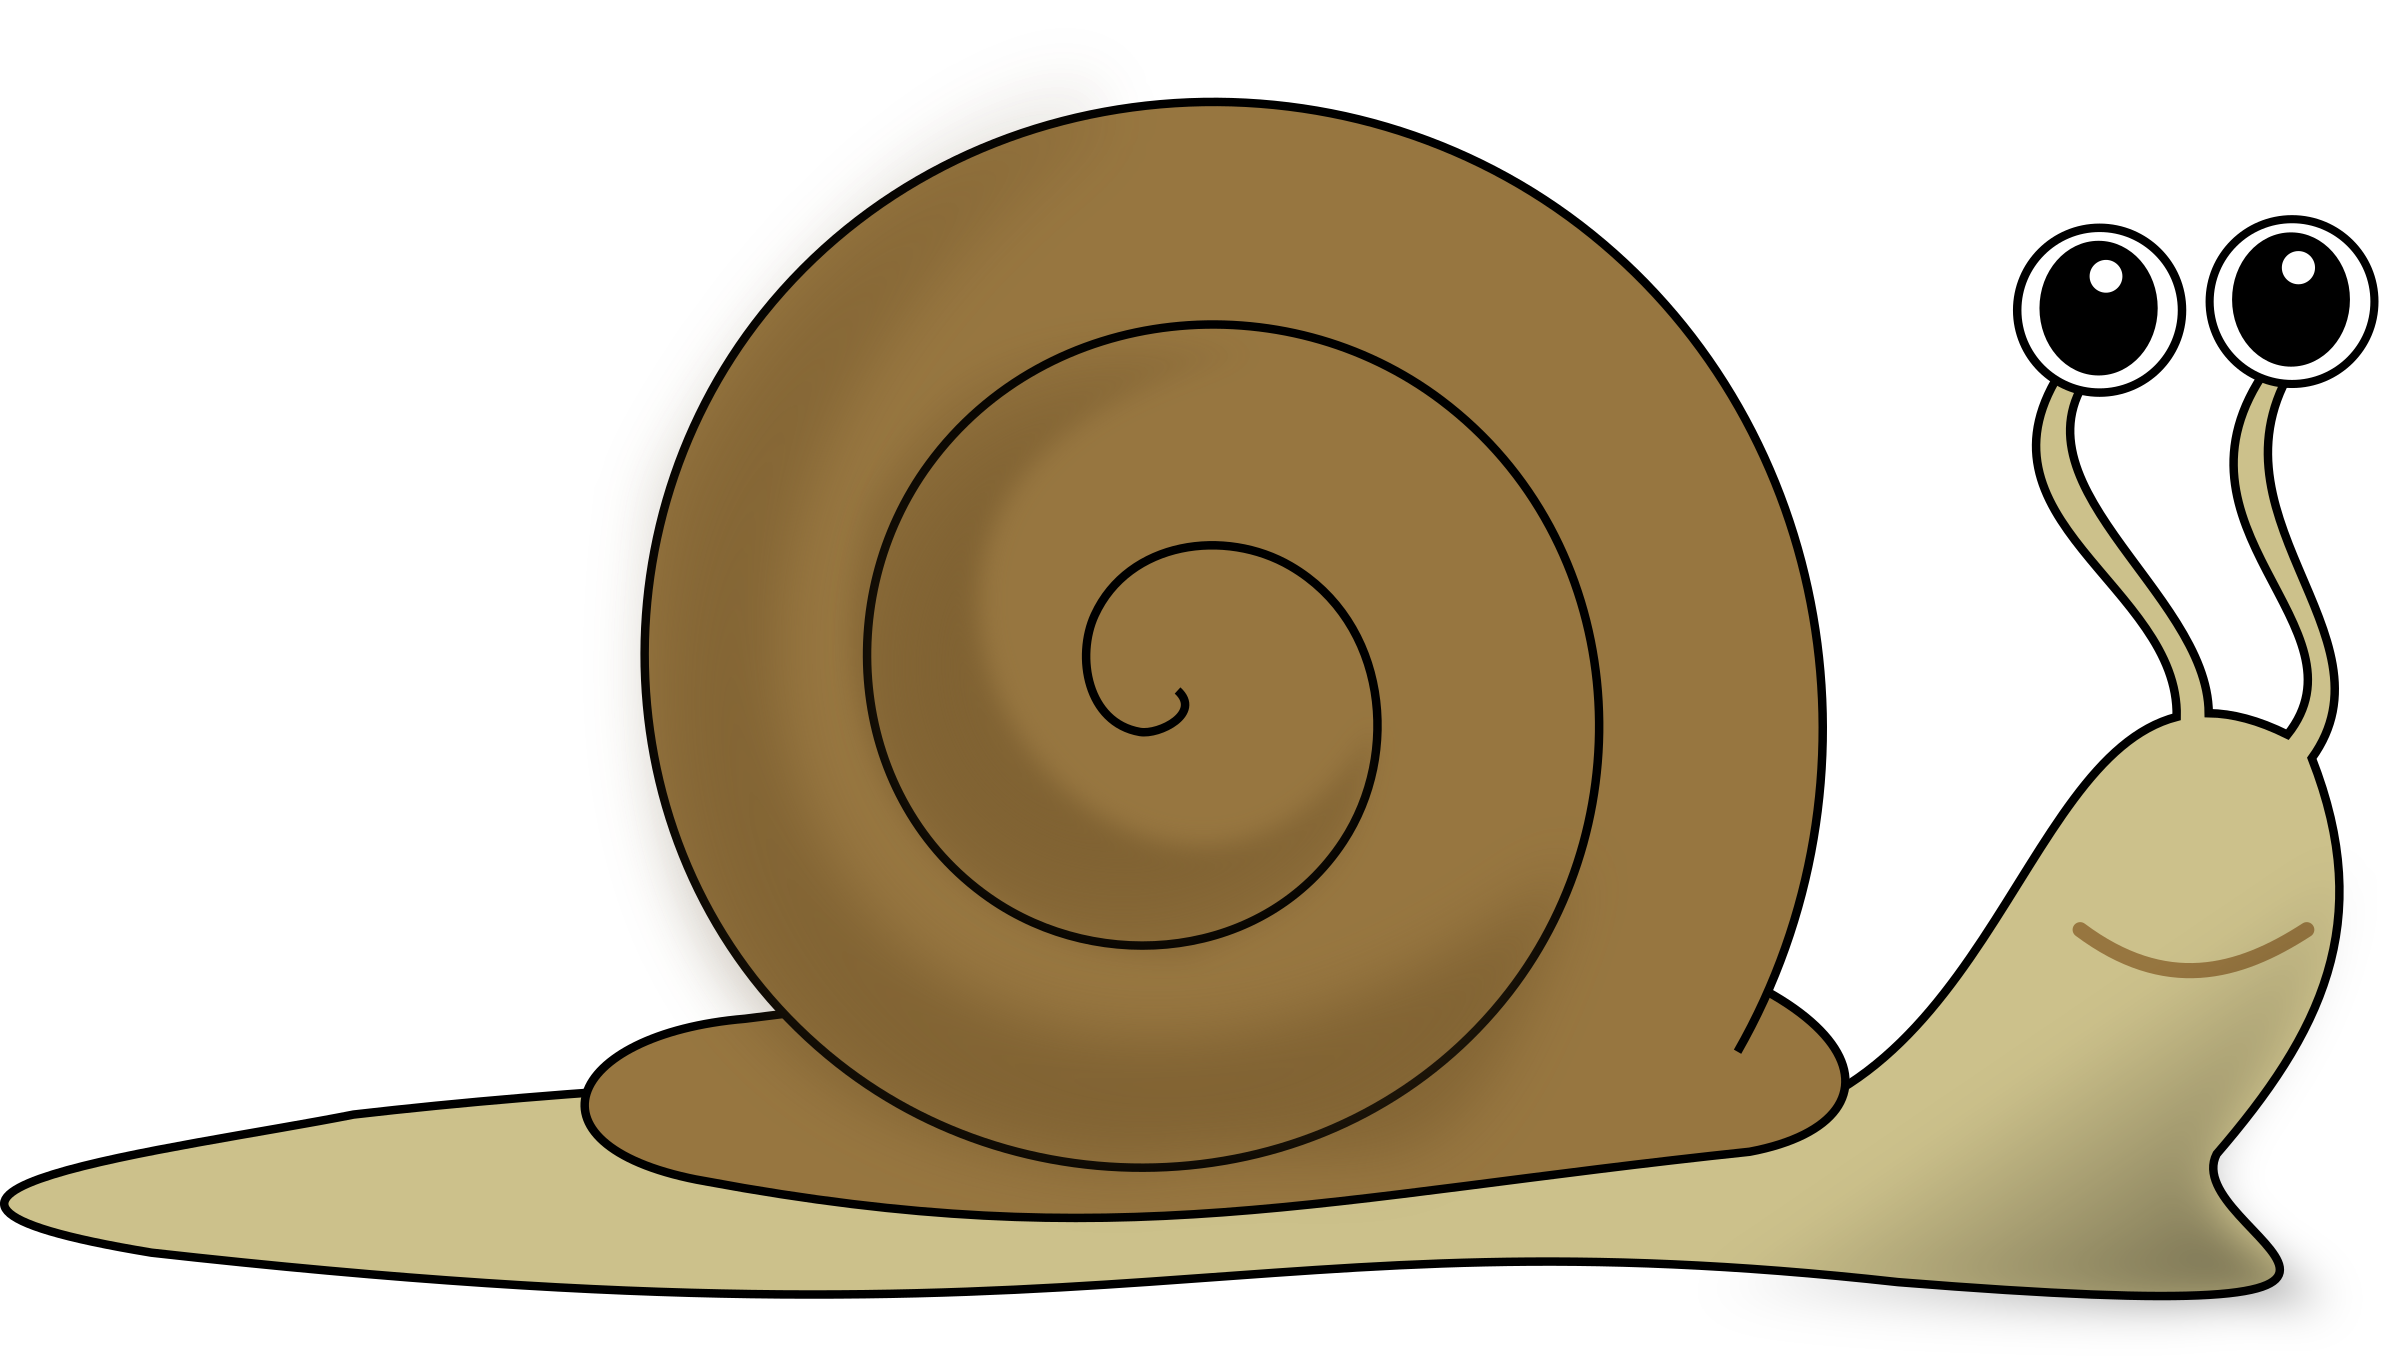 HQ Snail Wallpapers | File 385.32Kb